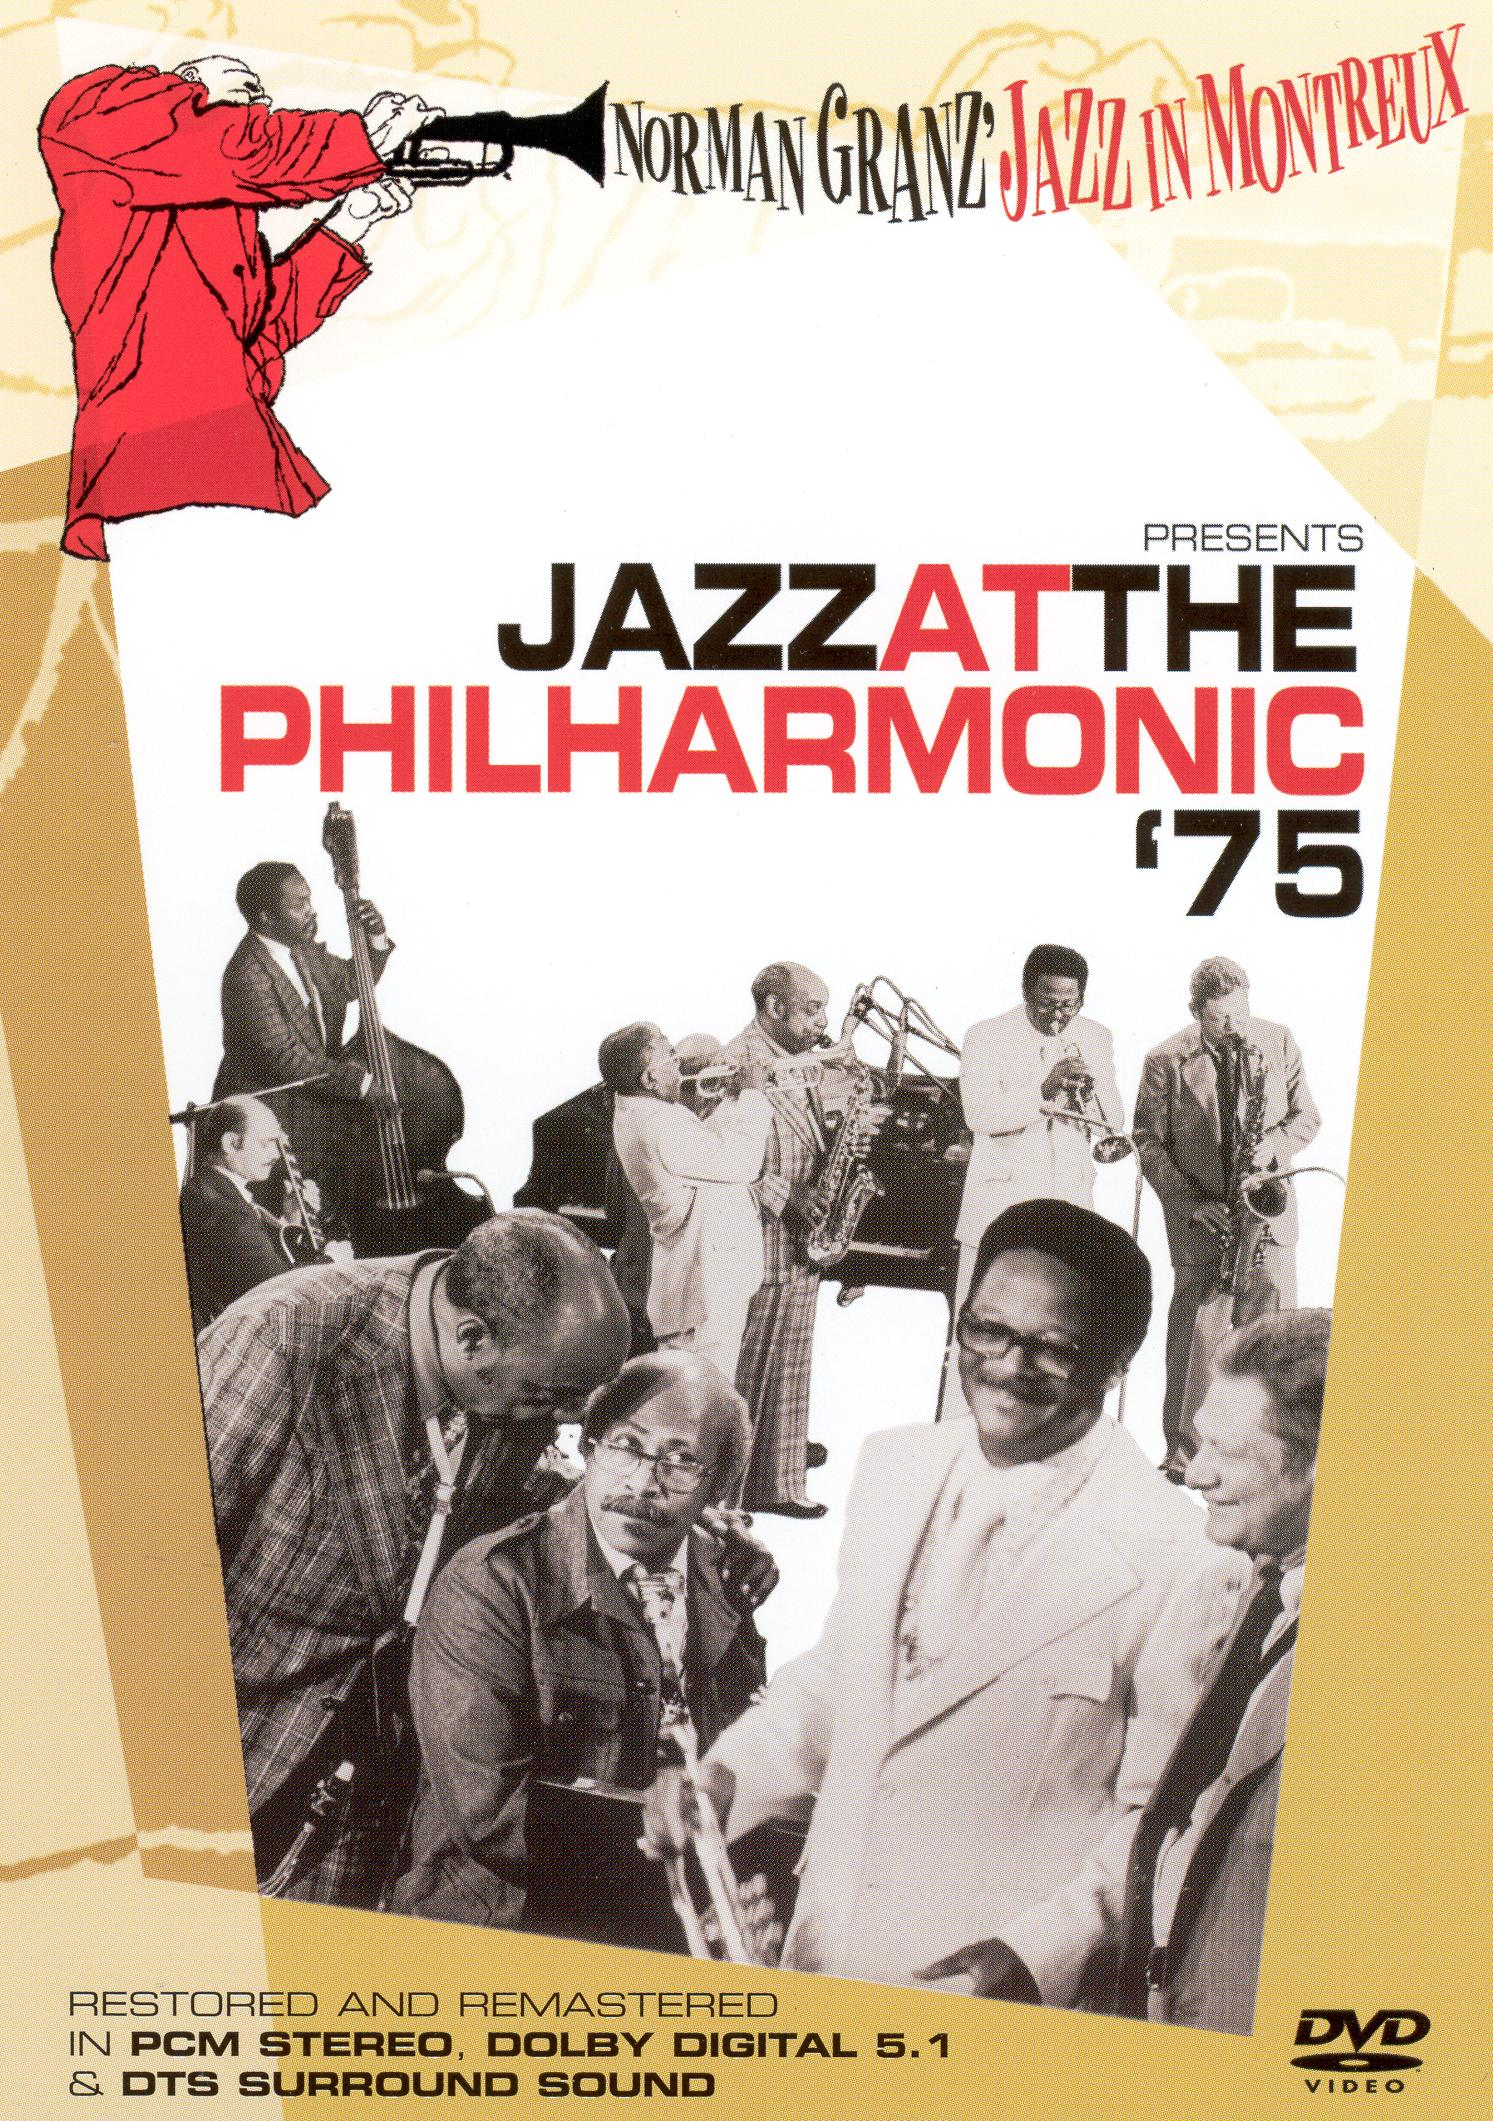 Jazz at the Philharmonic '75